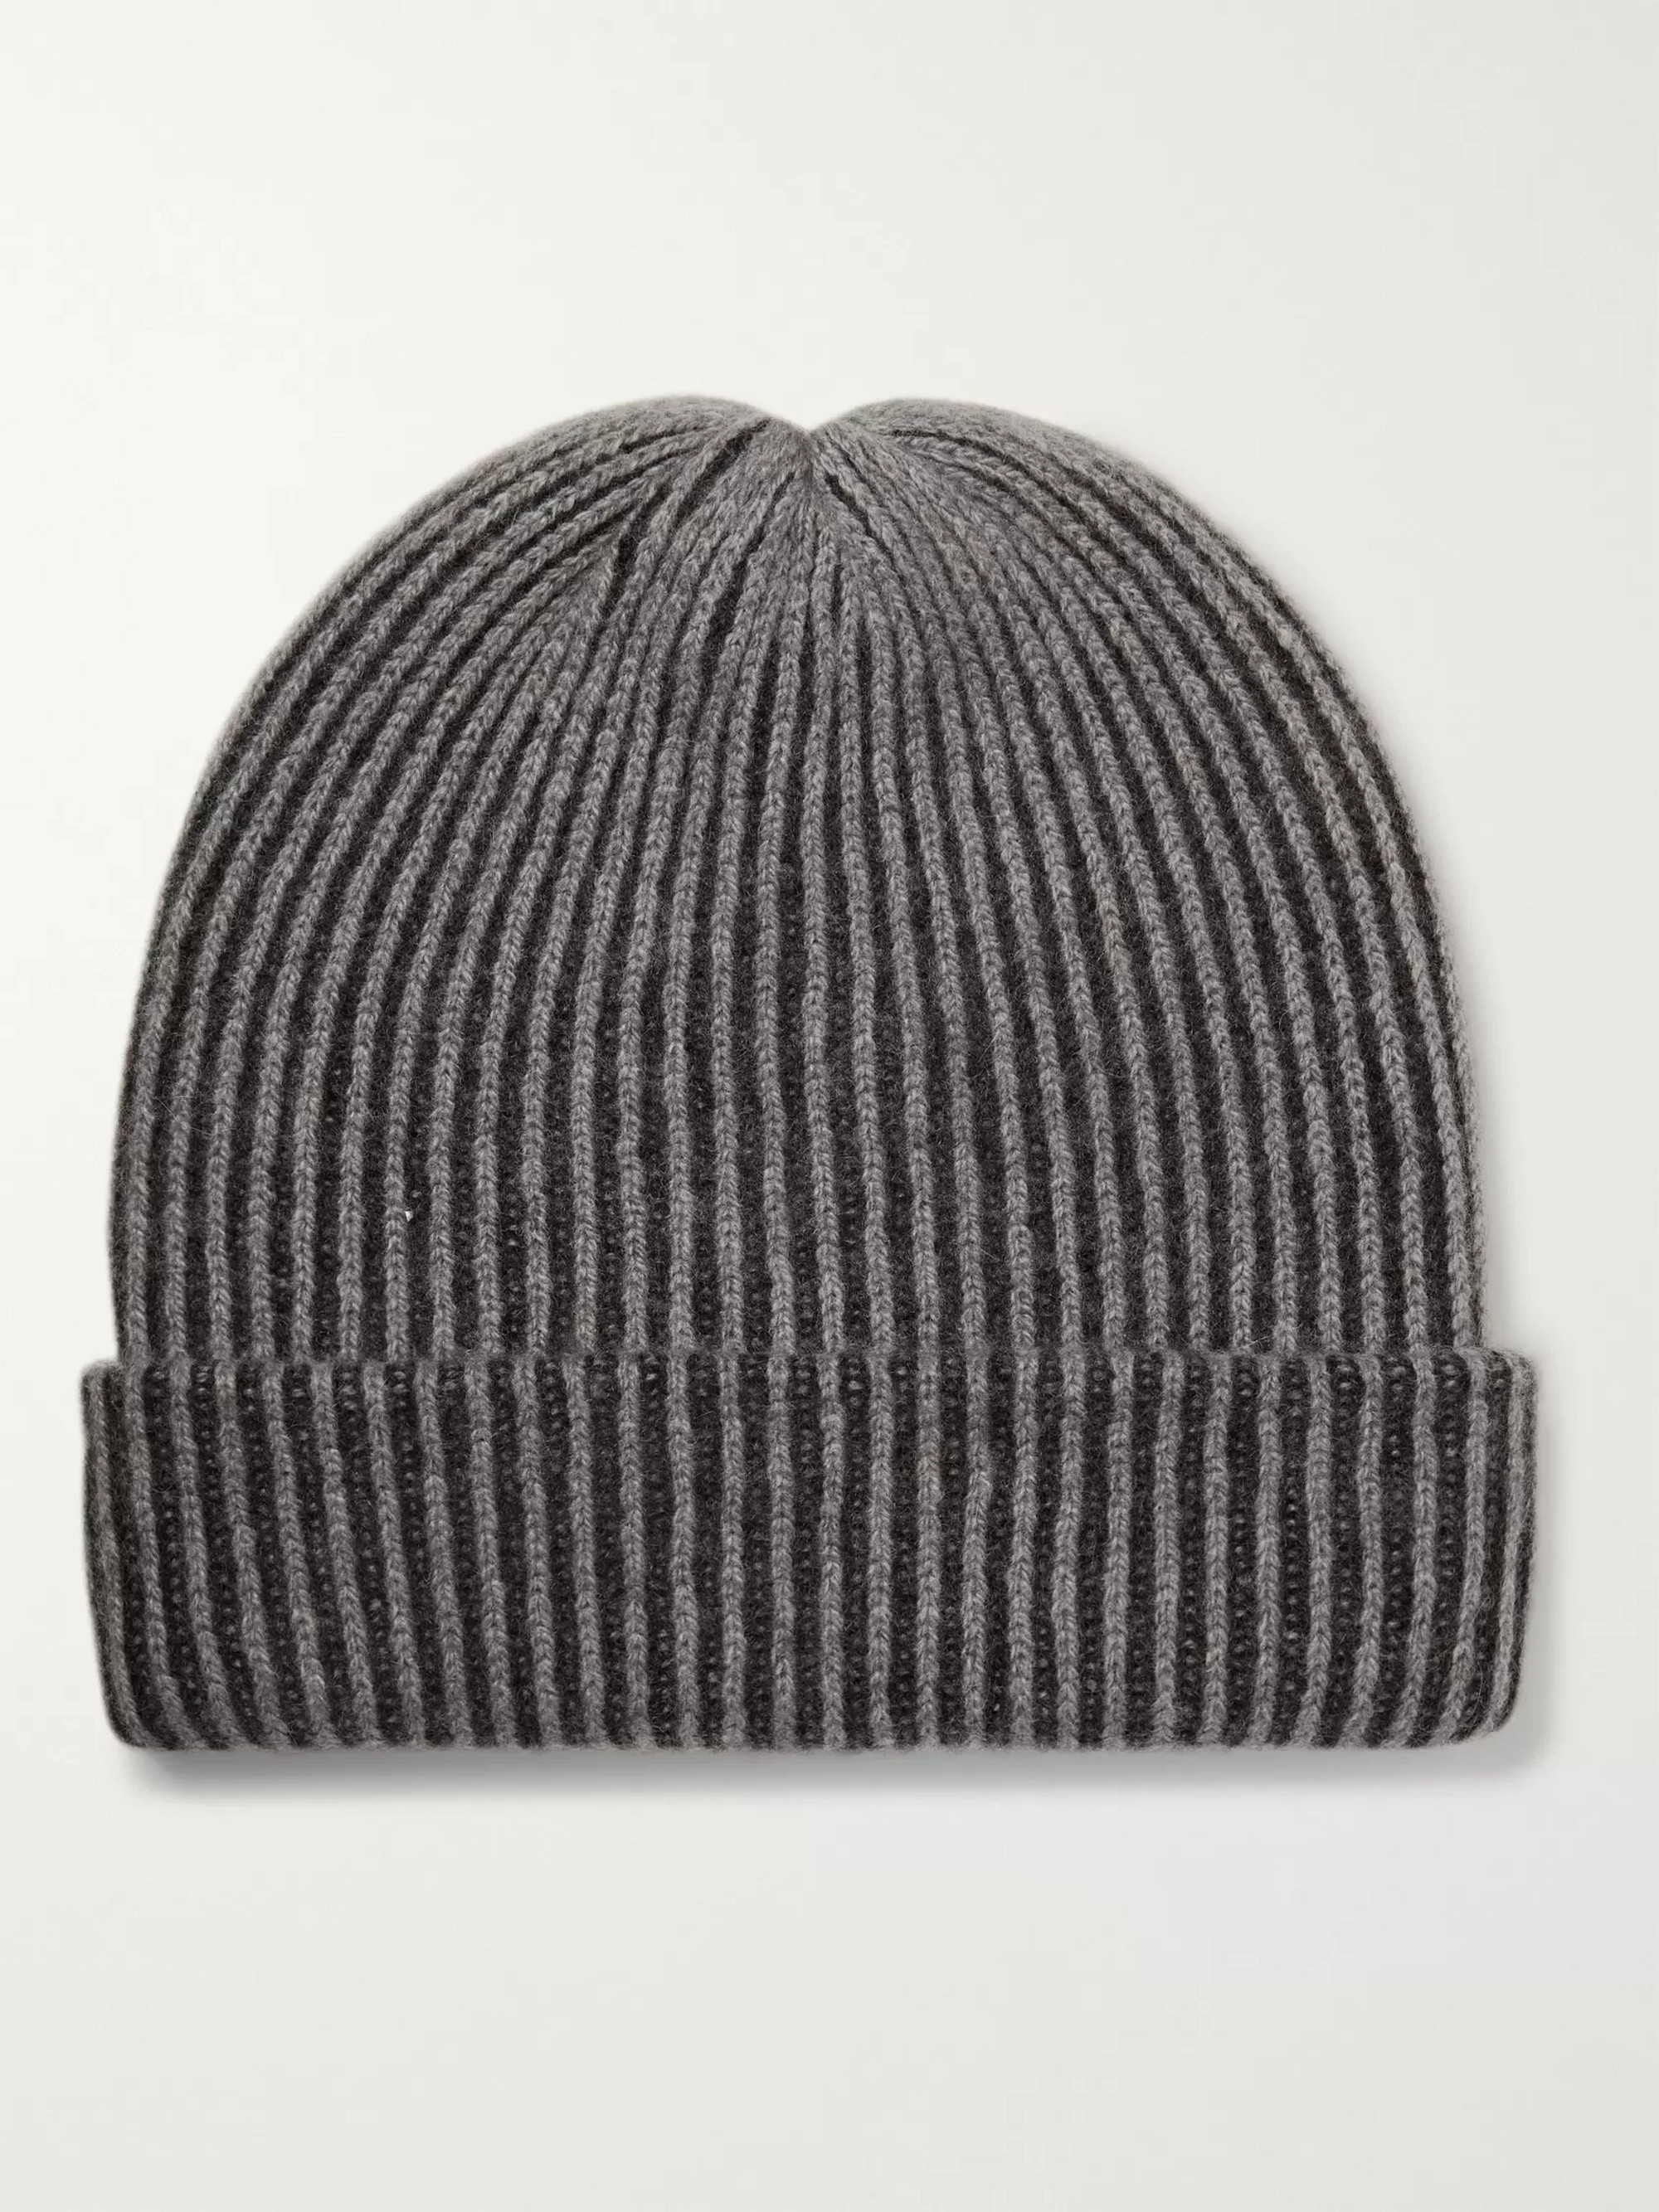 54aca69dee9656 The Elder Statesman Watchman 2 Striped Ribbed Cashmere Beanie